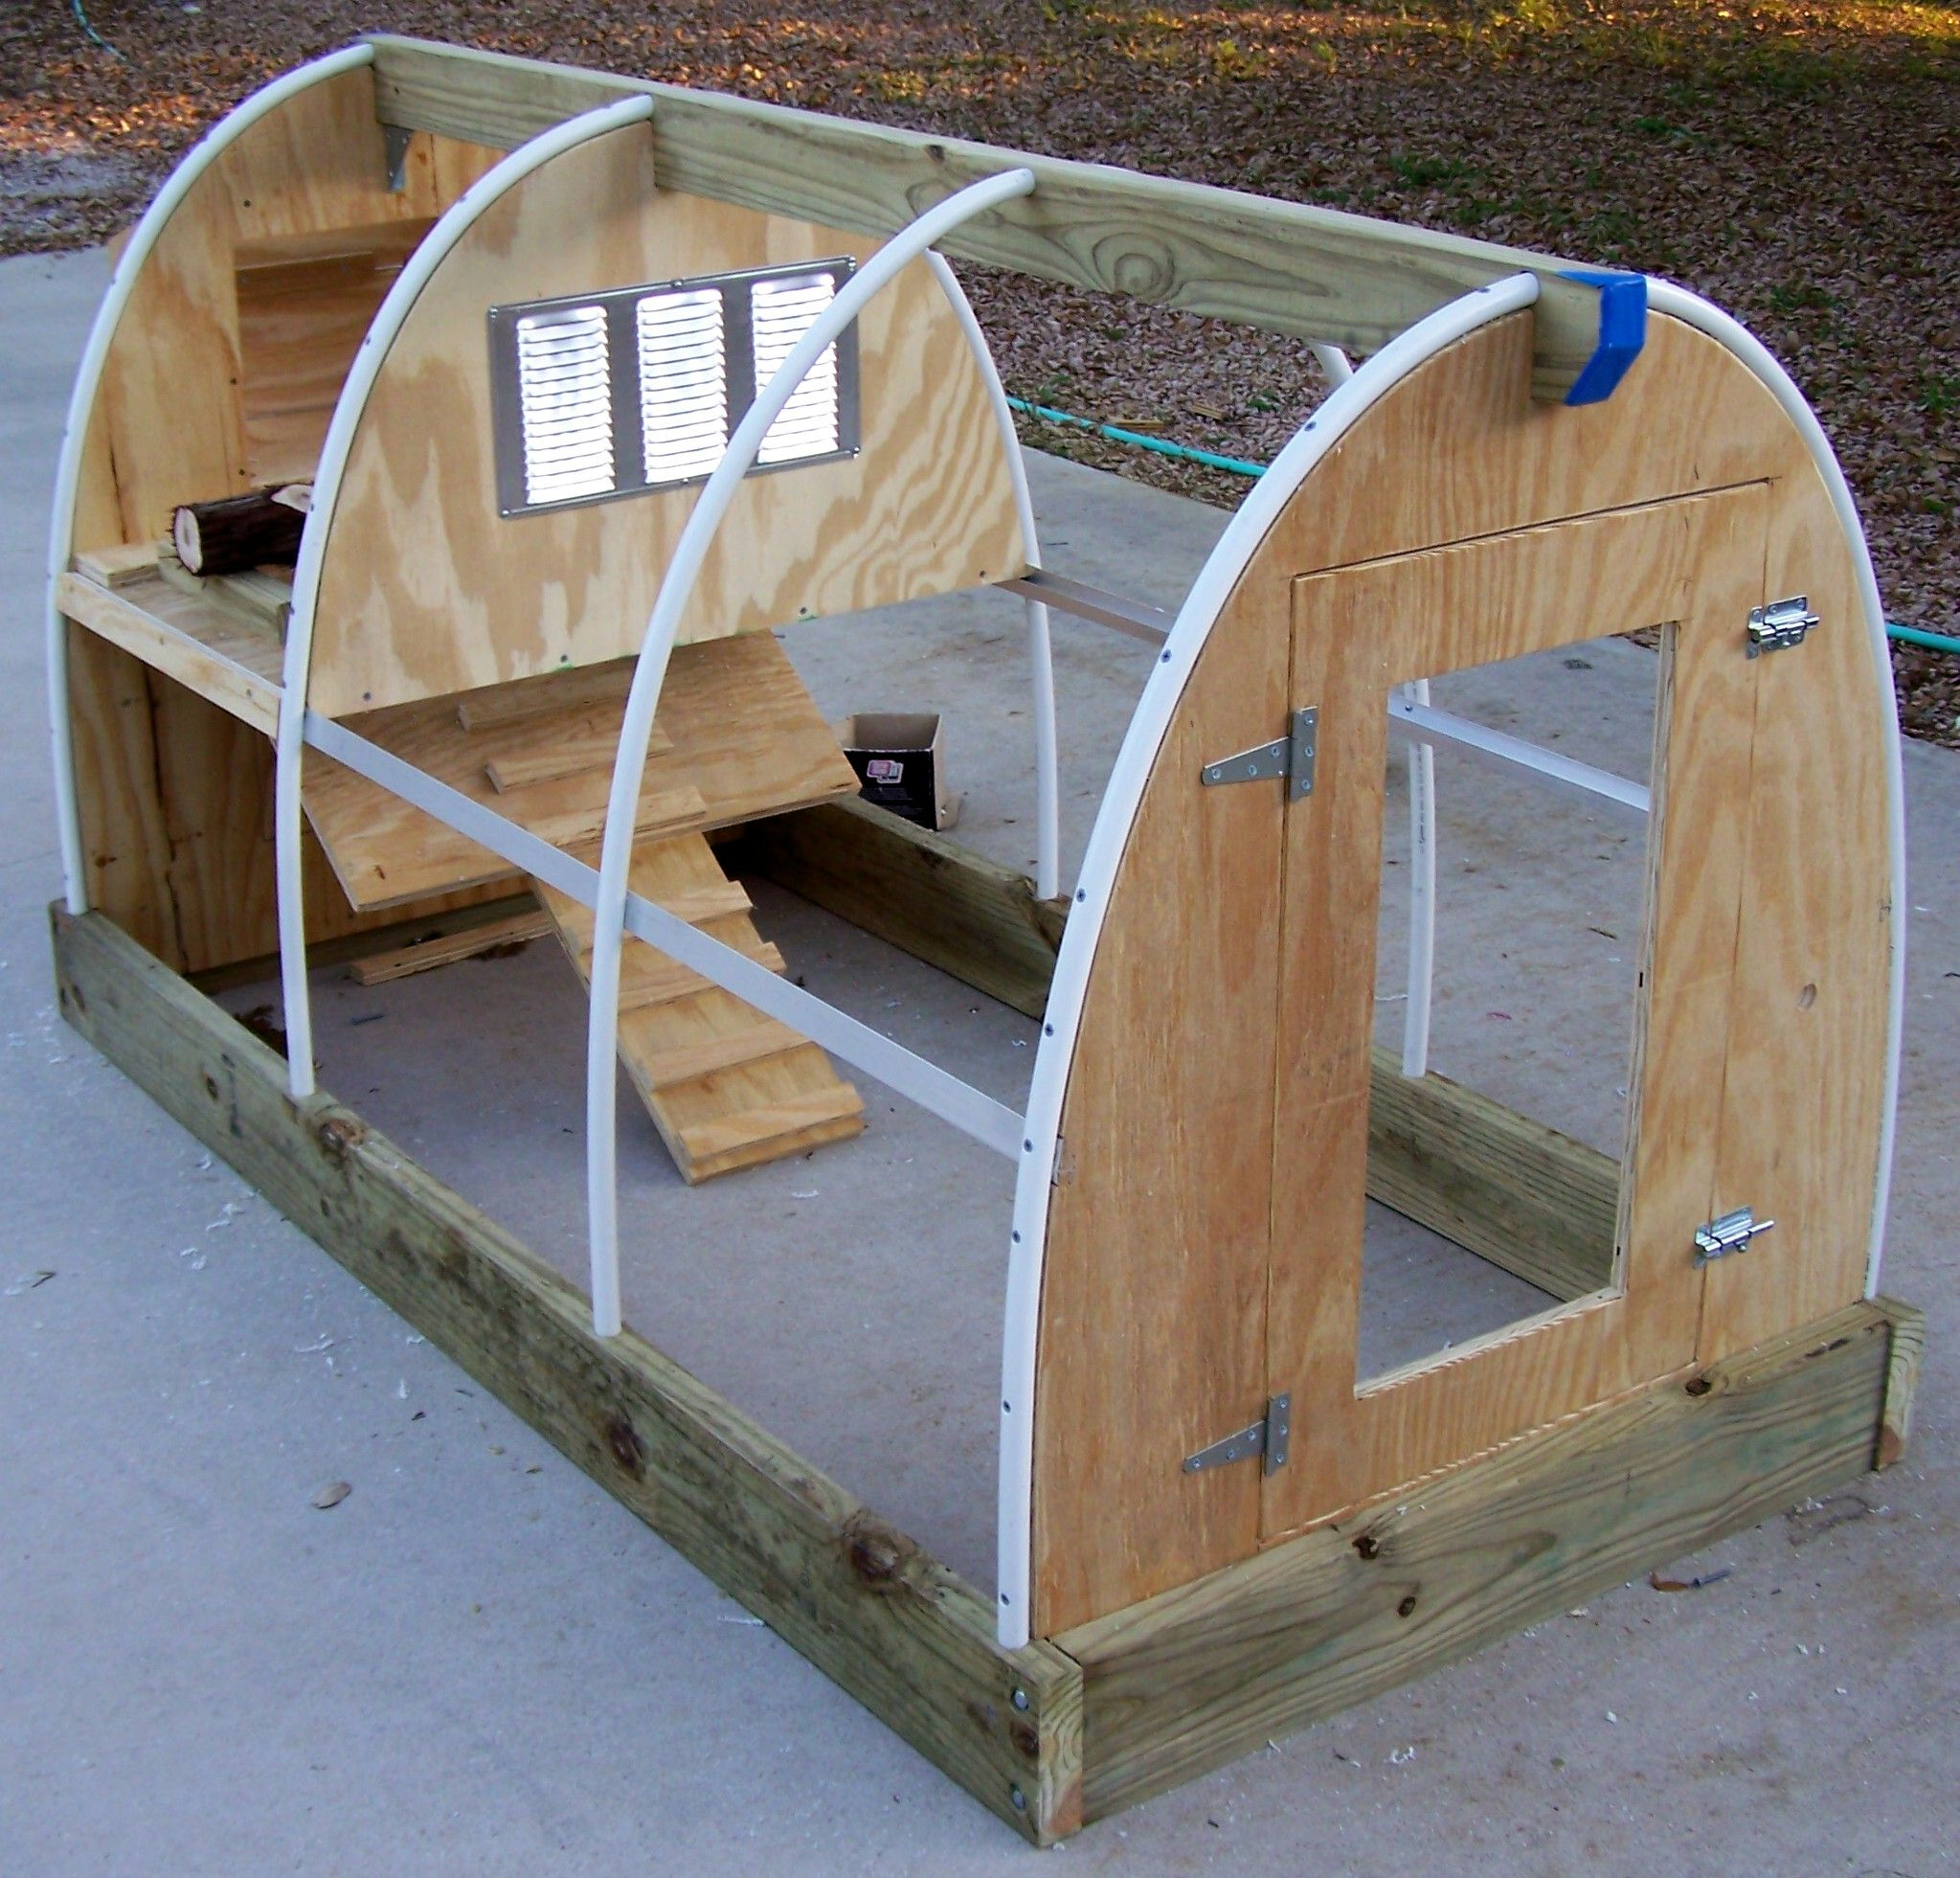 Diy chicken coops plans that are easy to build diy for Plans chicken coop